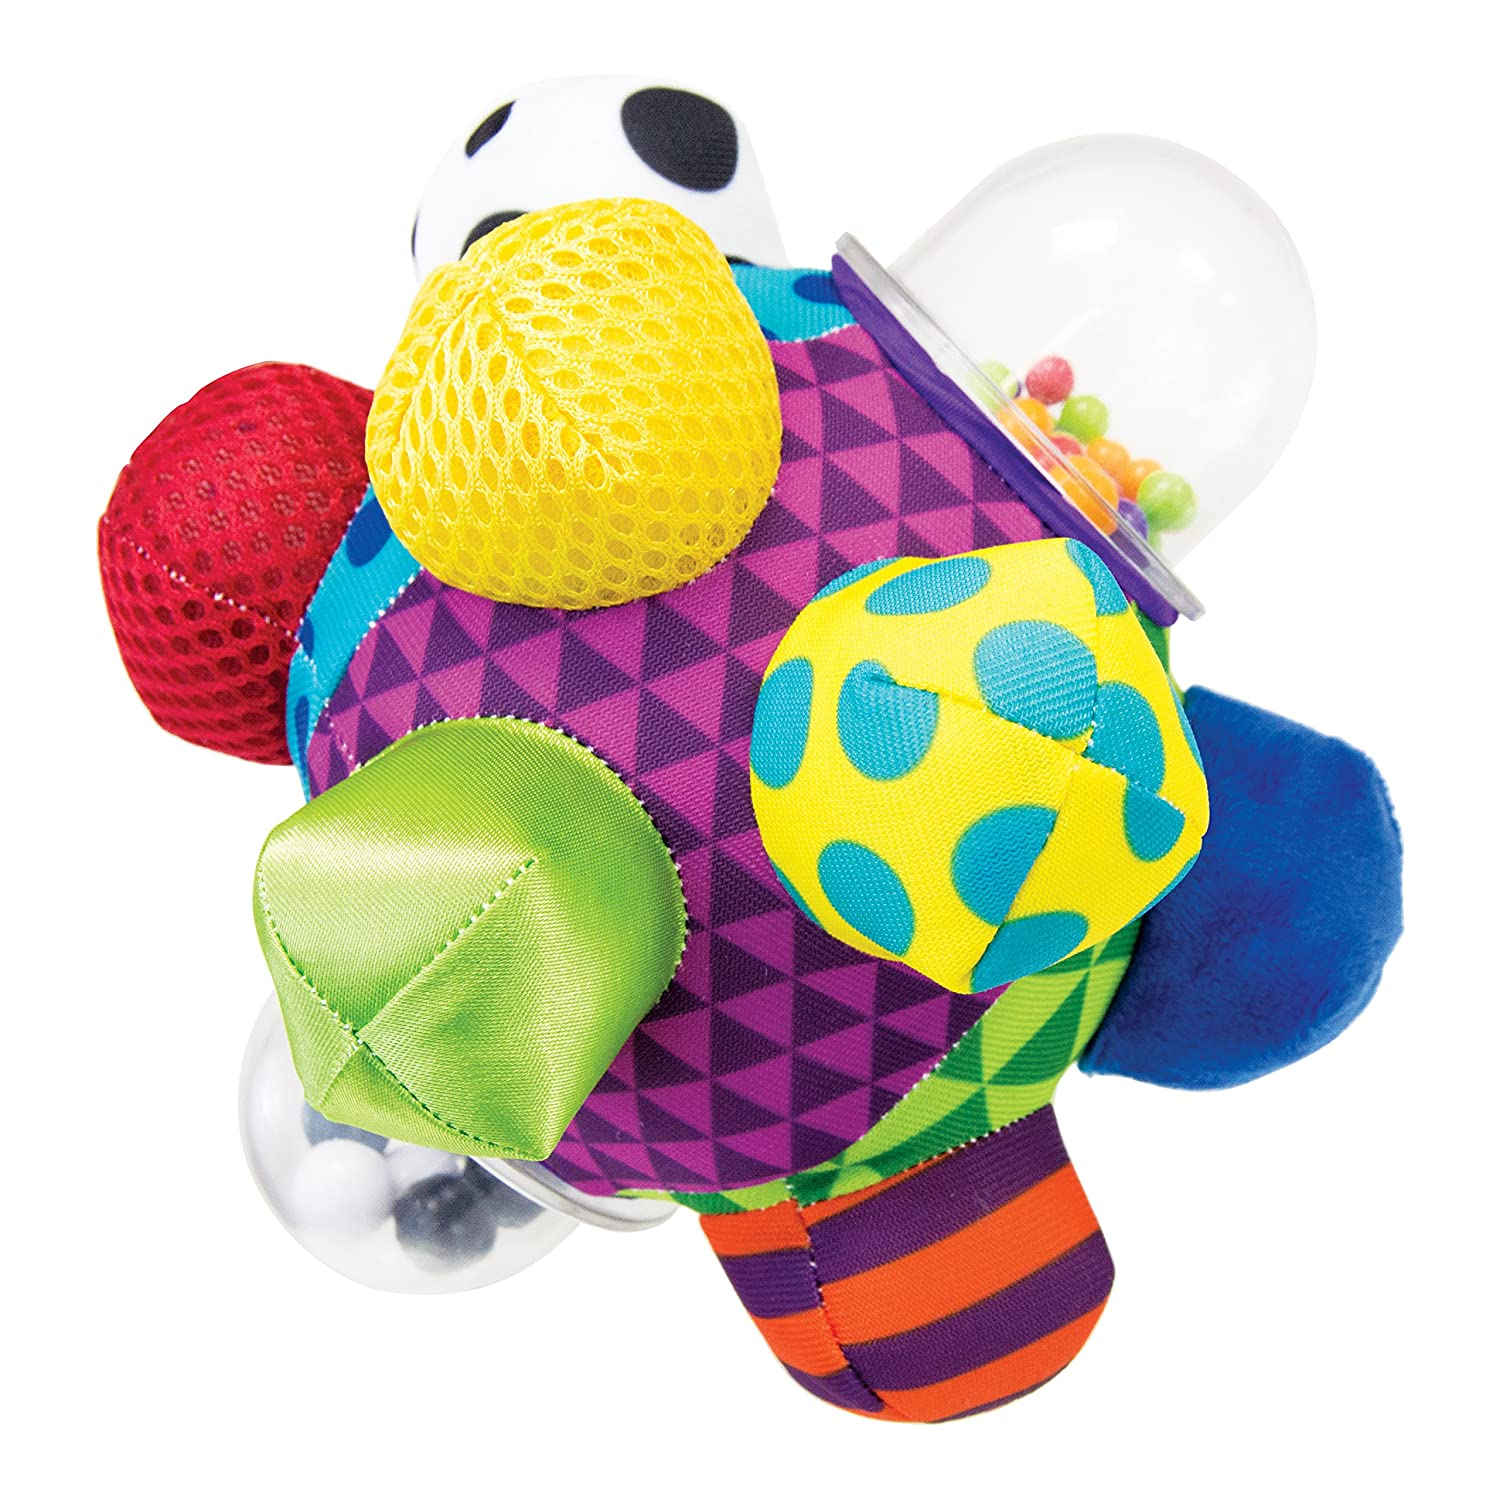 Toys For Balls : Top stimulating sensory toys for infants and babies in